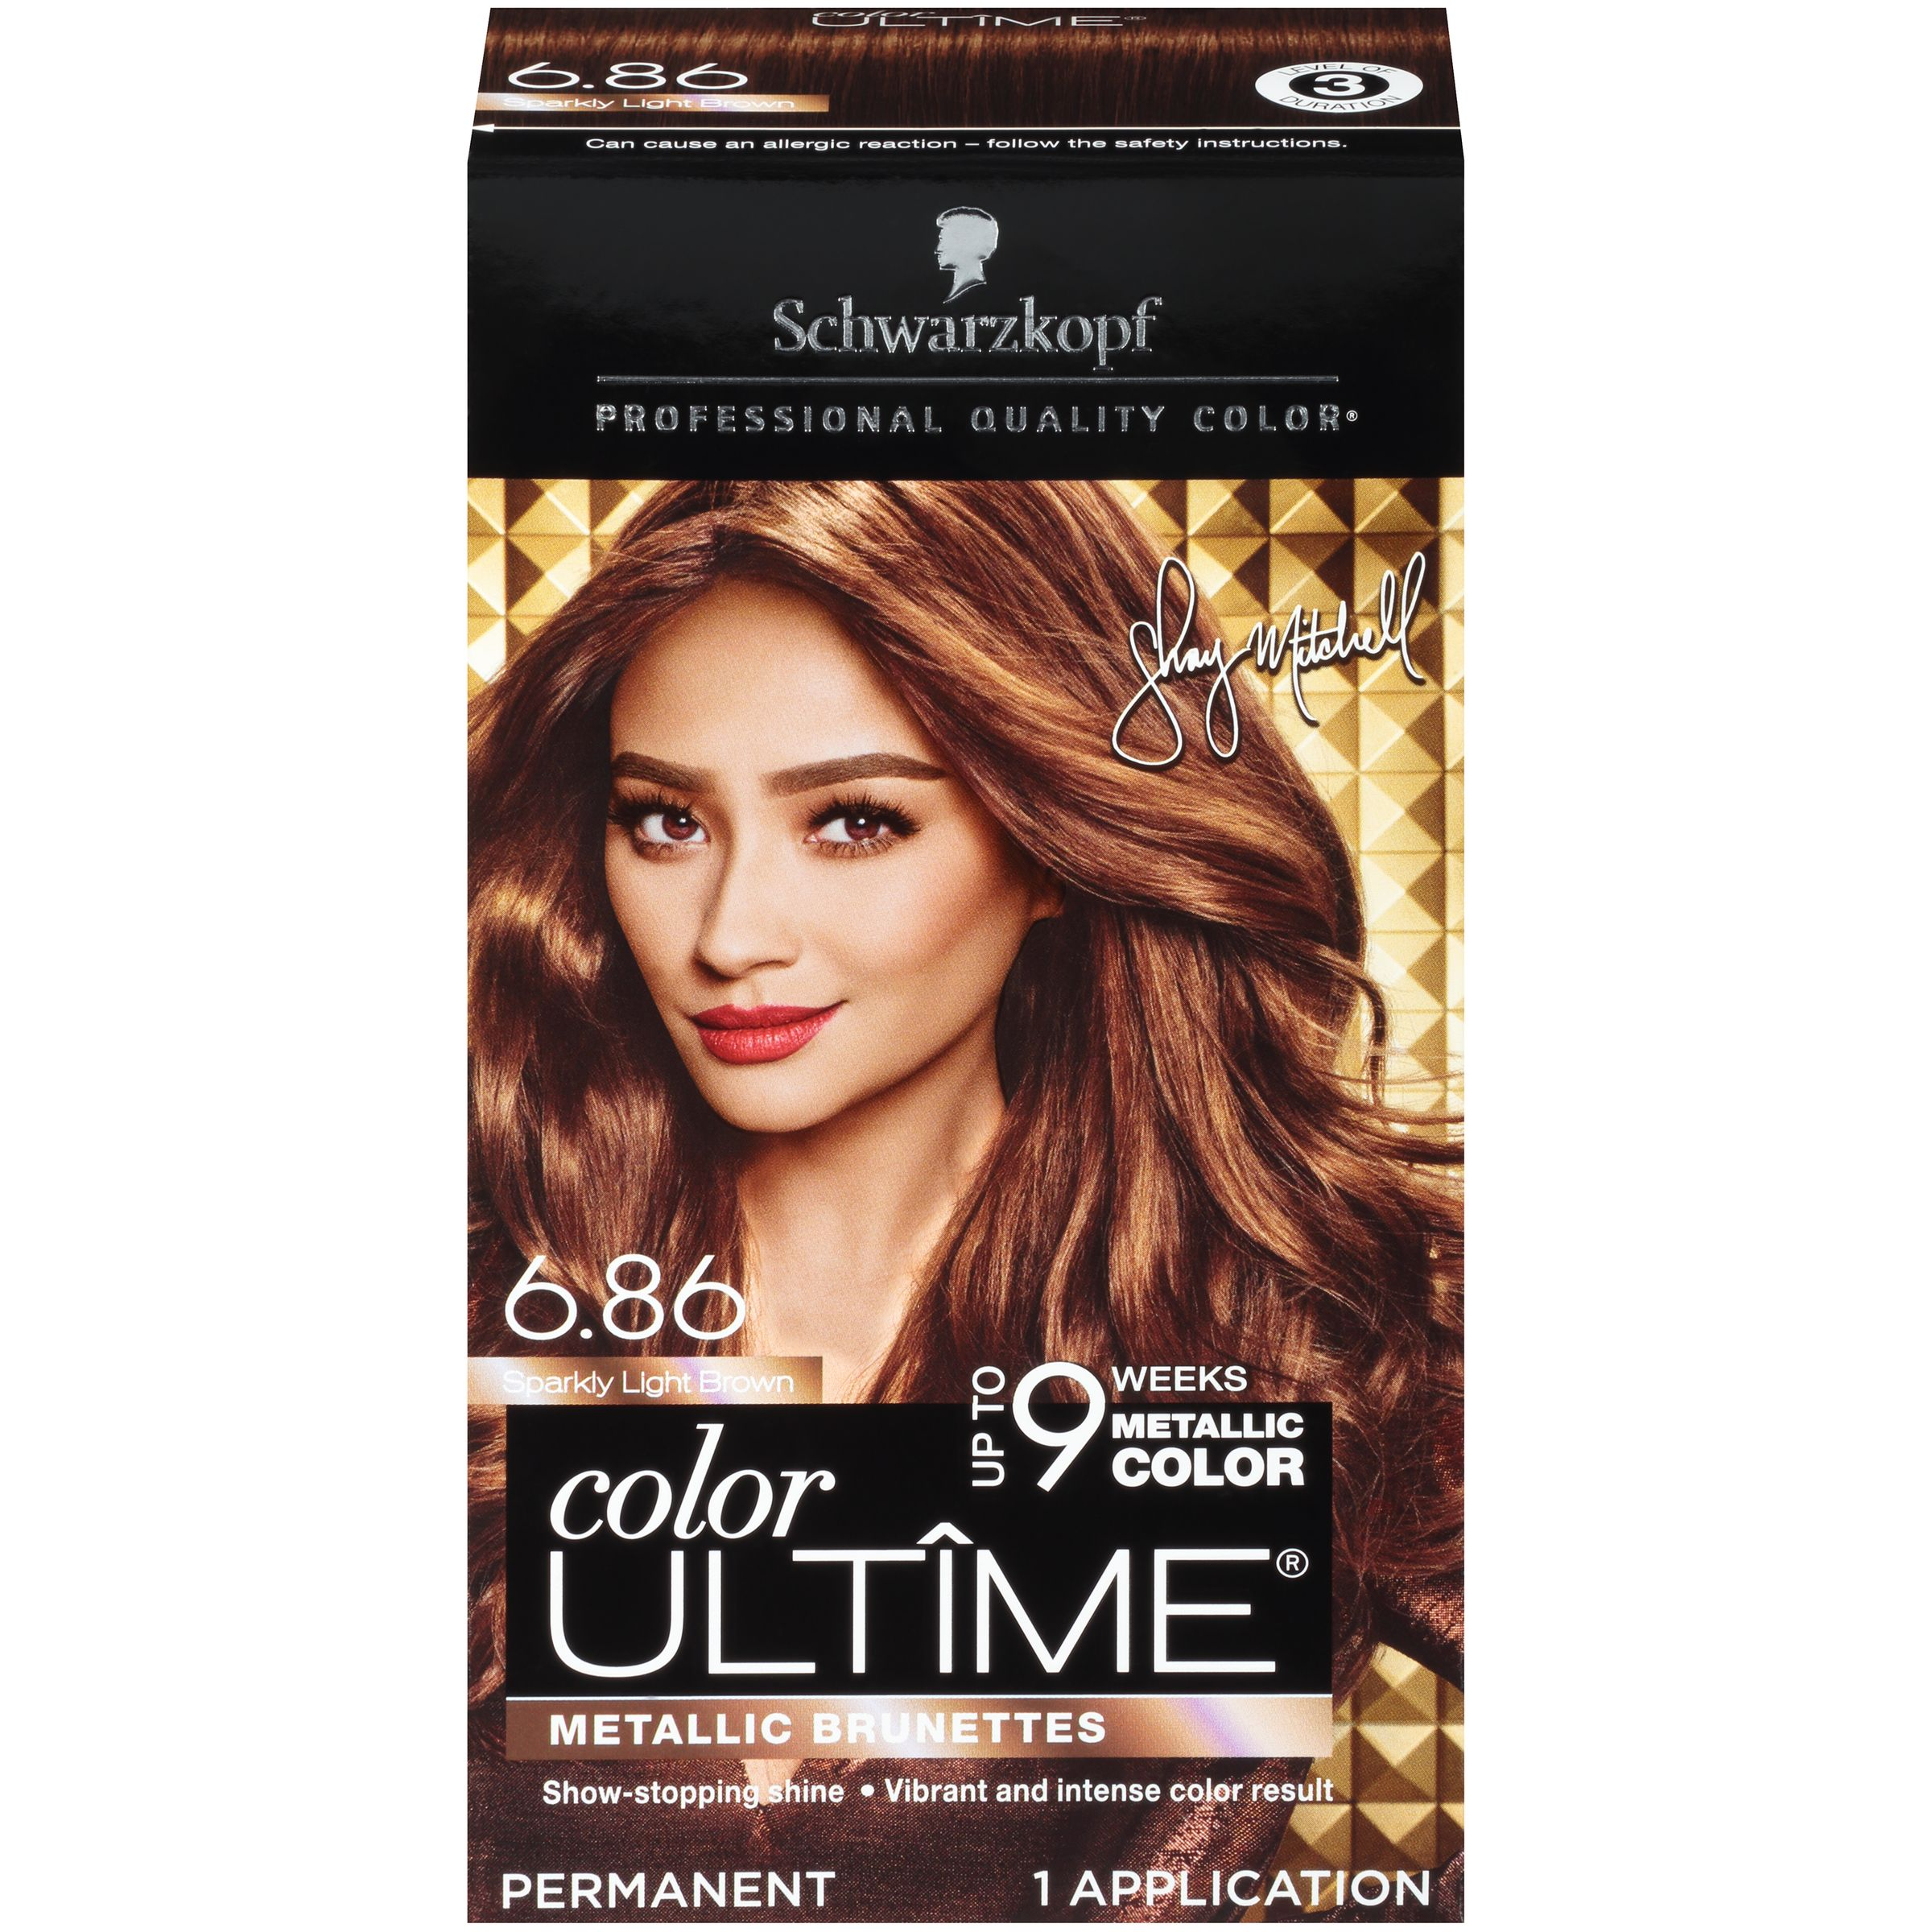 Beauty Hair Color Cream Permanent Hair Color Schwarzkopf Color